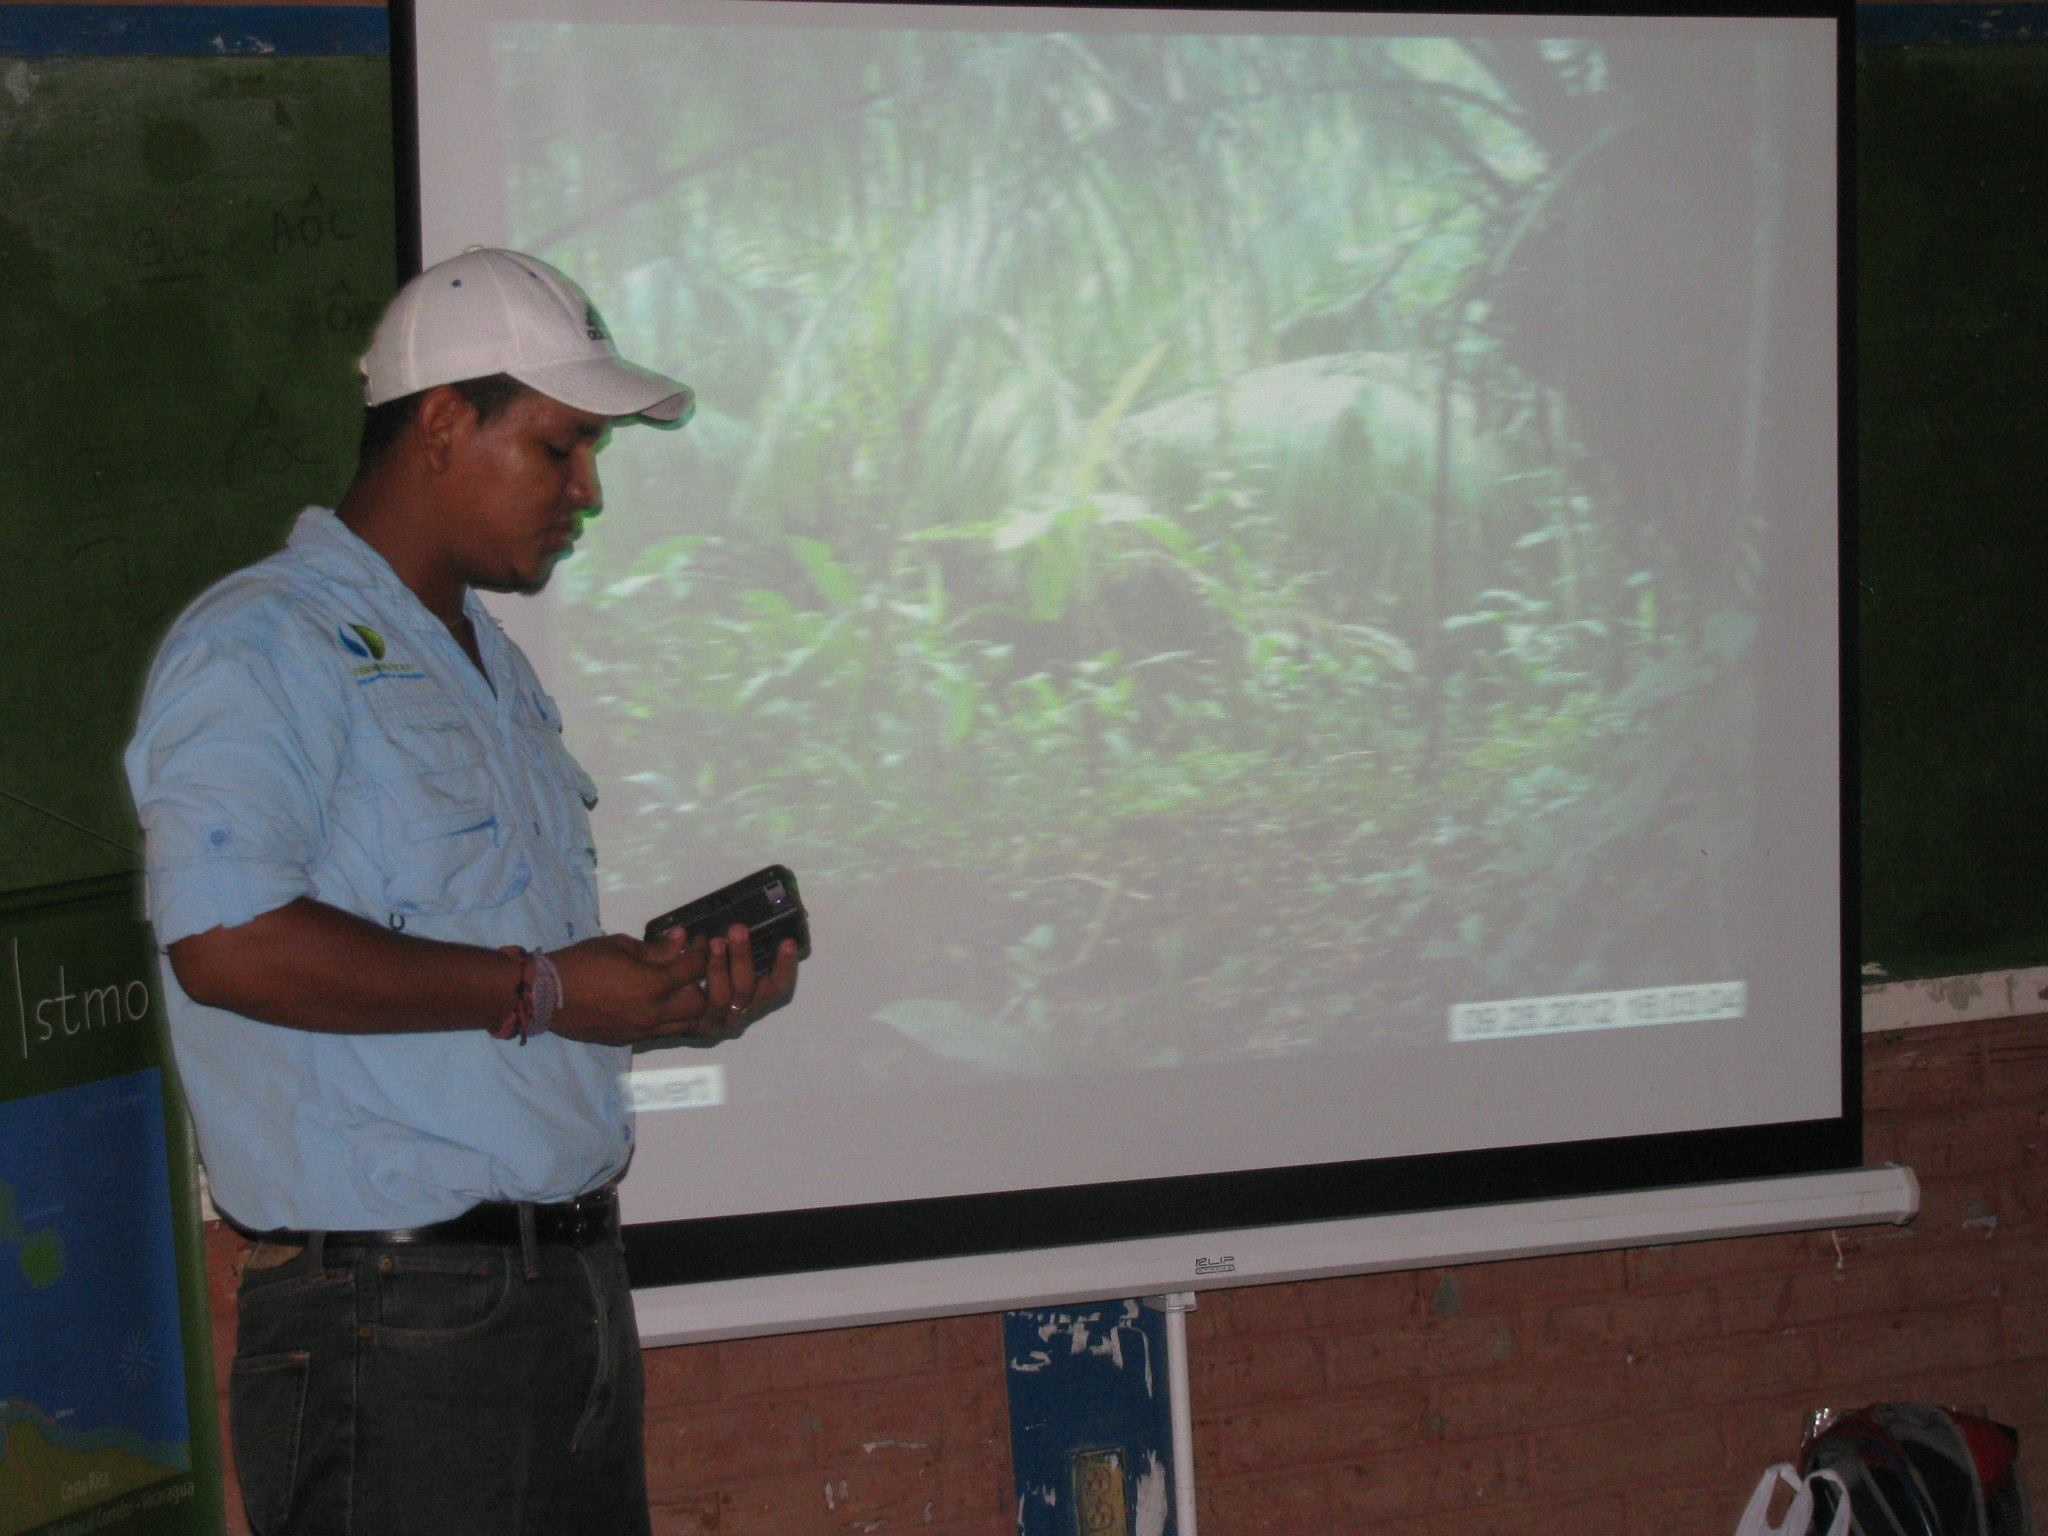 Marvin Chevez, Paso Pacifico Wildlife Technician, educating community members how camera traps work. He had family in nearly every community we visited, which helped break the ice.